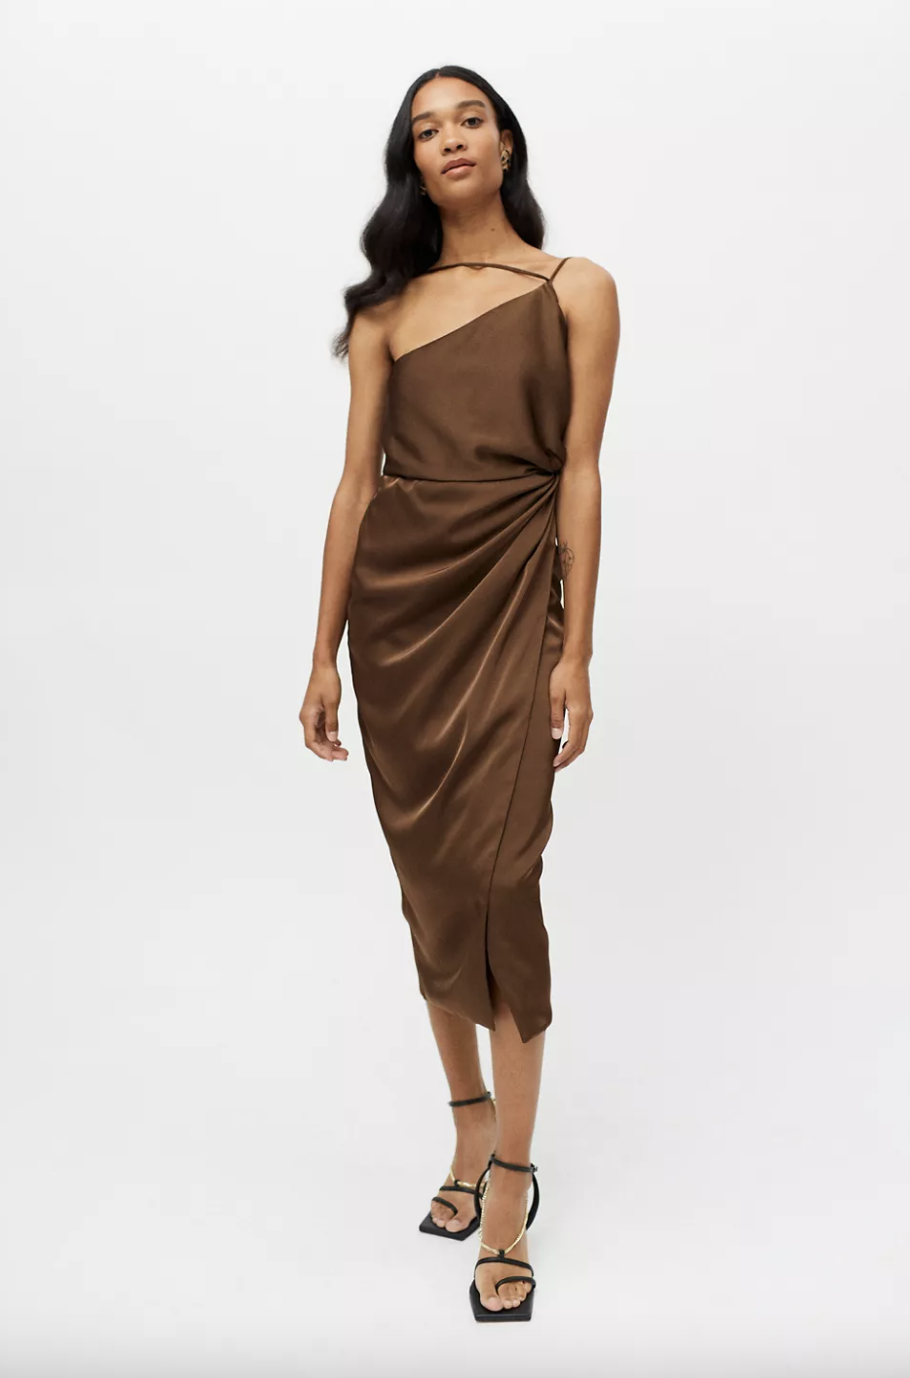 black model posing with brown silky dress and black strappy heels